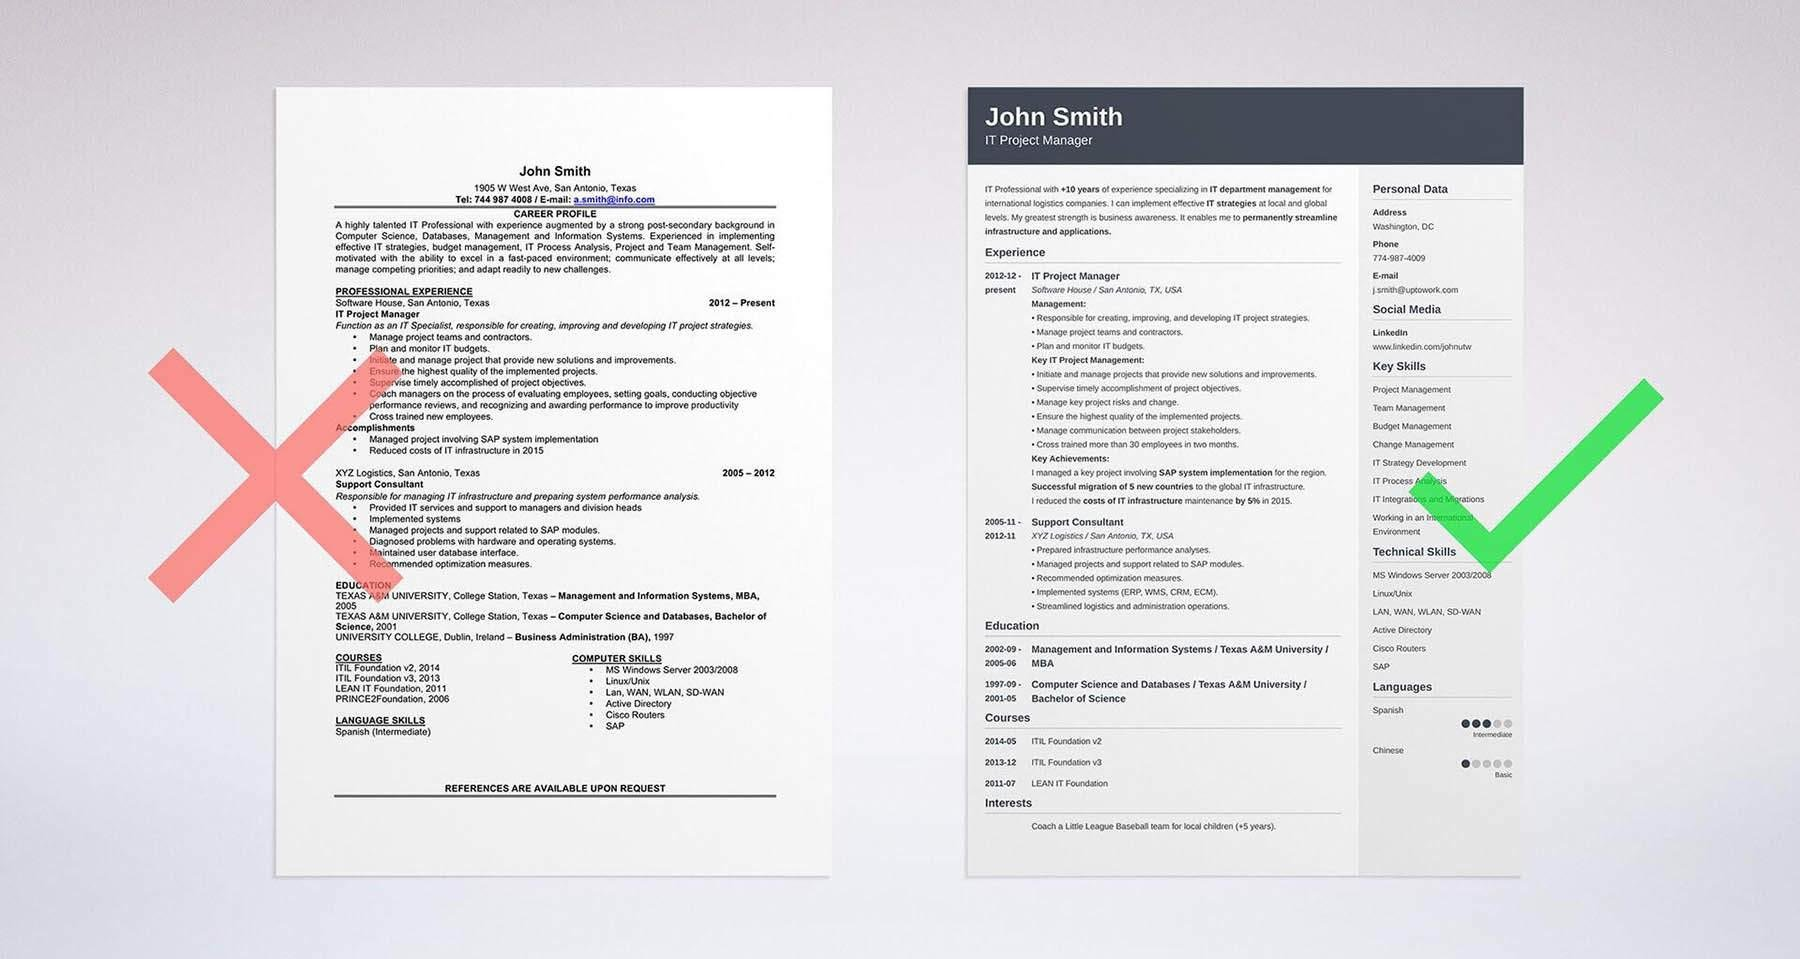 Marvelous Highlight Your Resume Objective With Our Templates   Create Your Resume In  5 Minutes Here. For General Resume Objective Examples